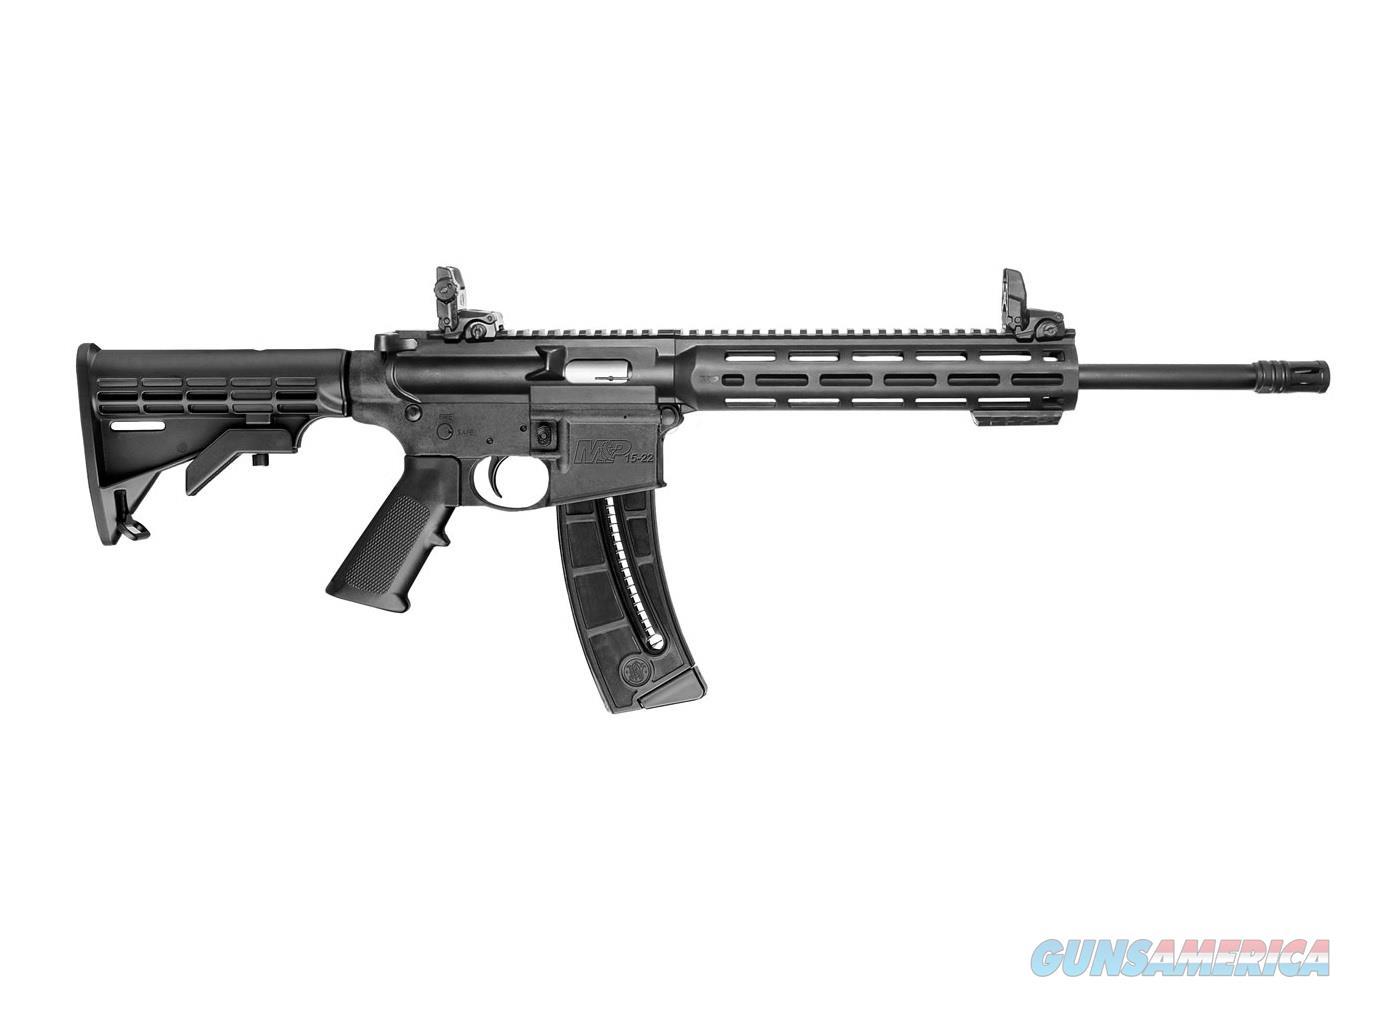 SMITH & WESSON M&P15-22 SPORT AR-15 .22 LR  10208  Guns > Rifles > Smith & Wesson Rifles > M&P